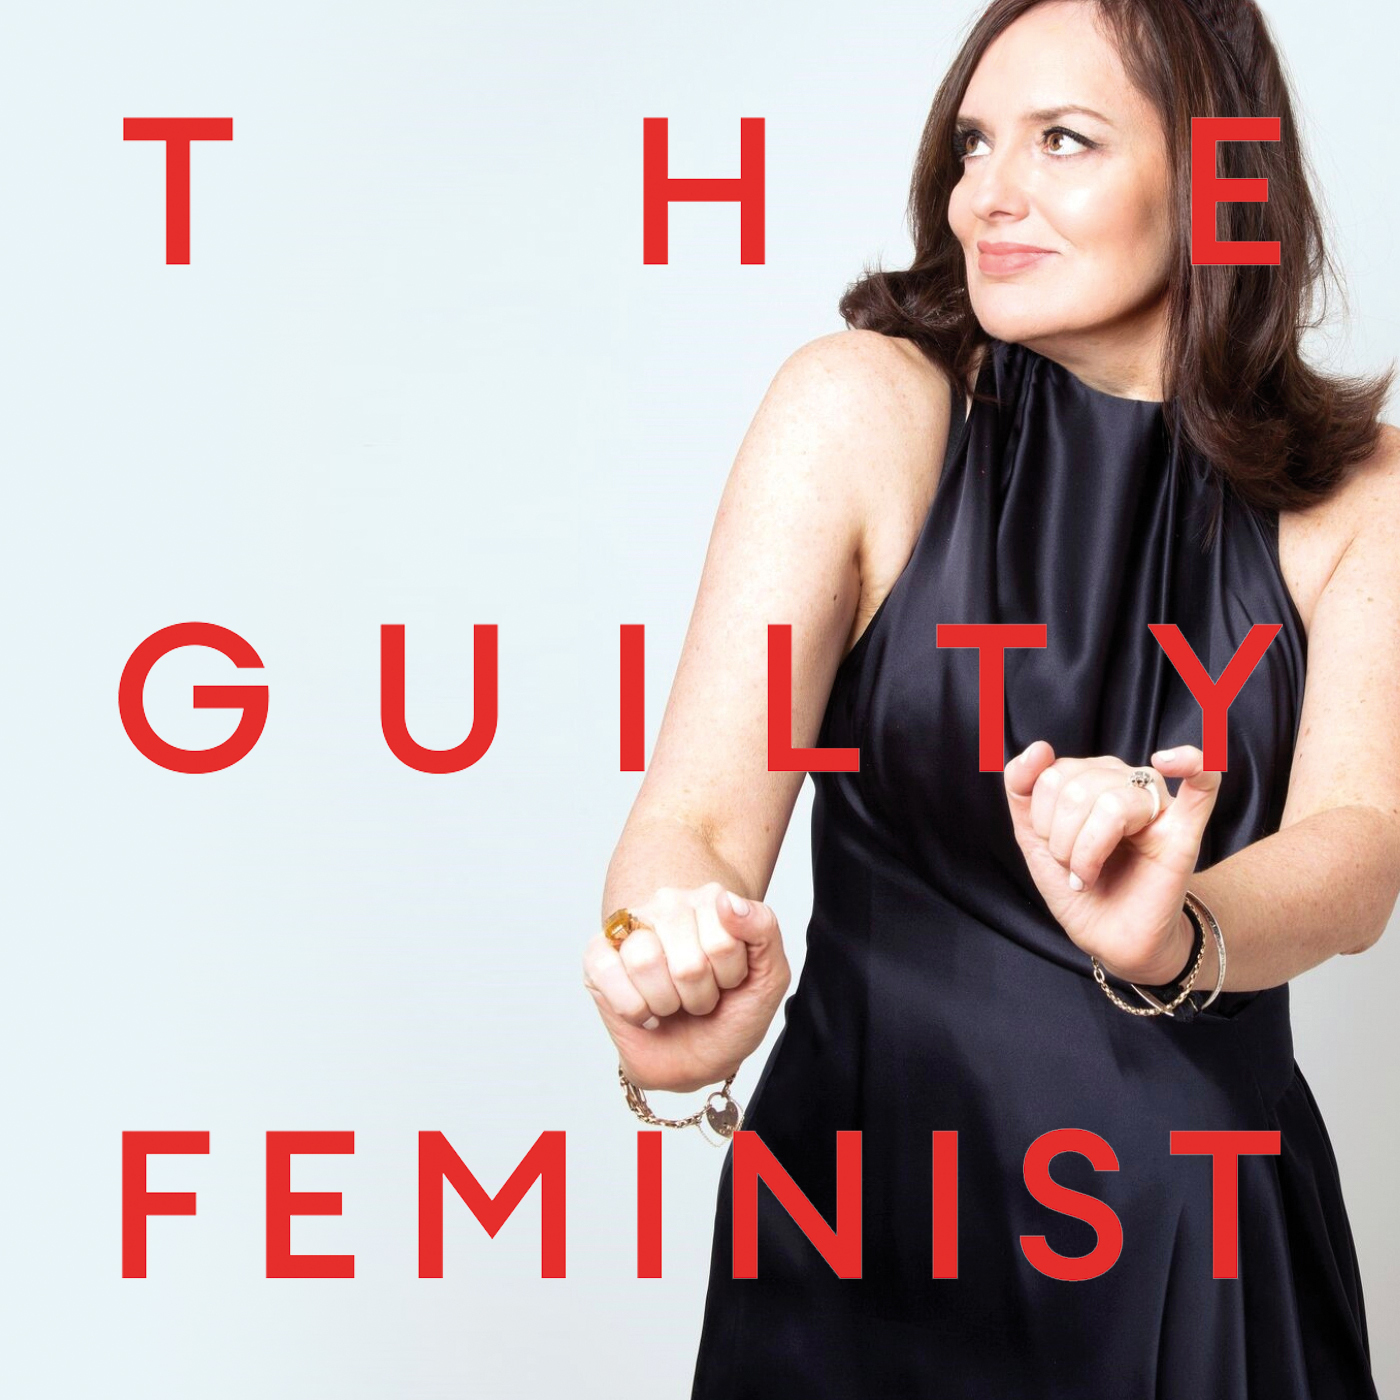 Ever felt like you should be better at feminism? Join comedian Deborah Frances-White and her guests for this comedy podcast, recorded in front of a live audience. -